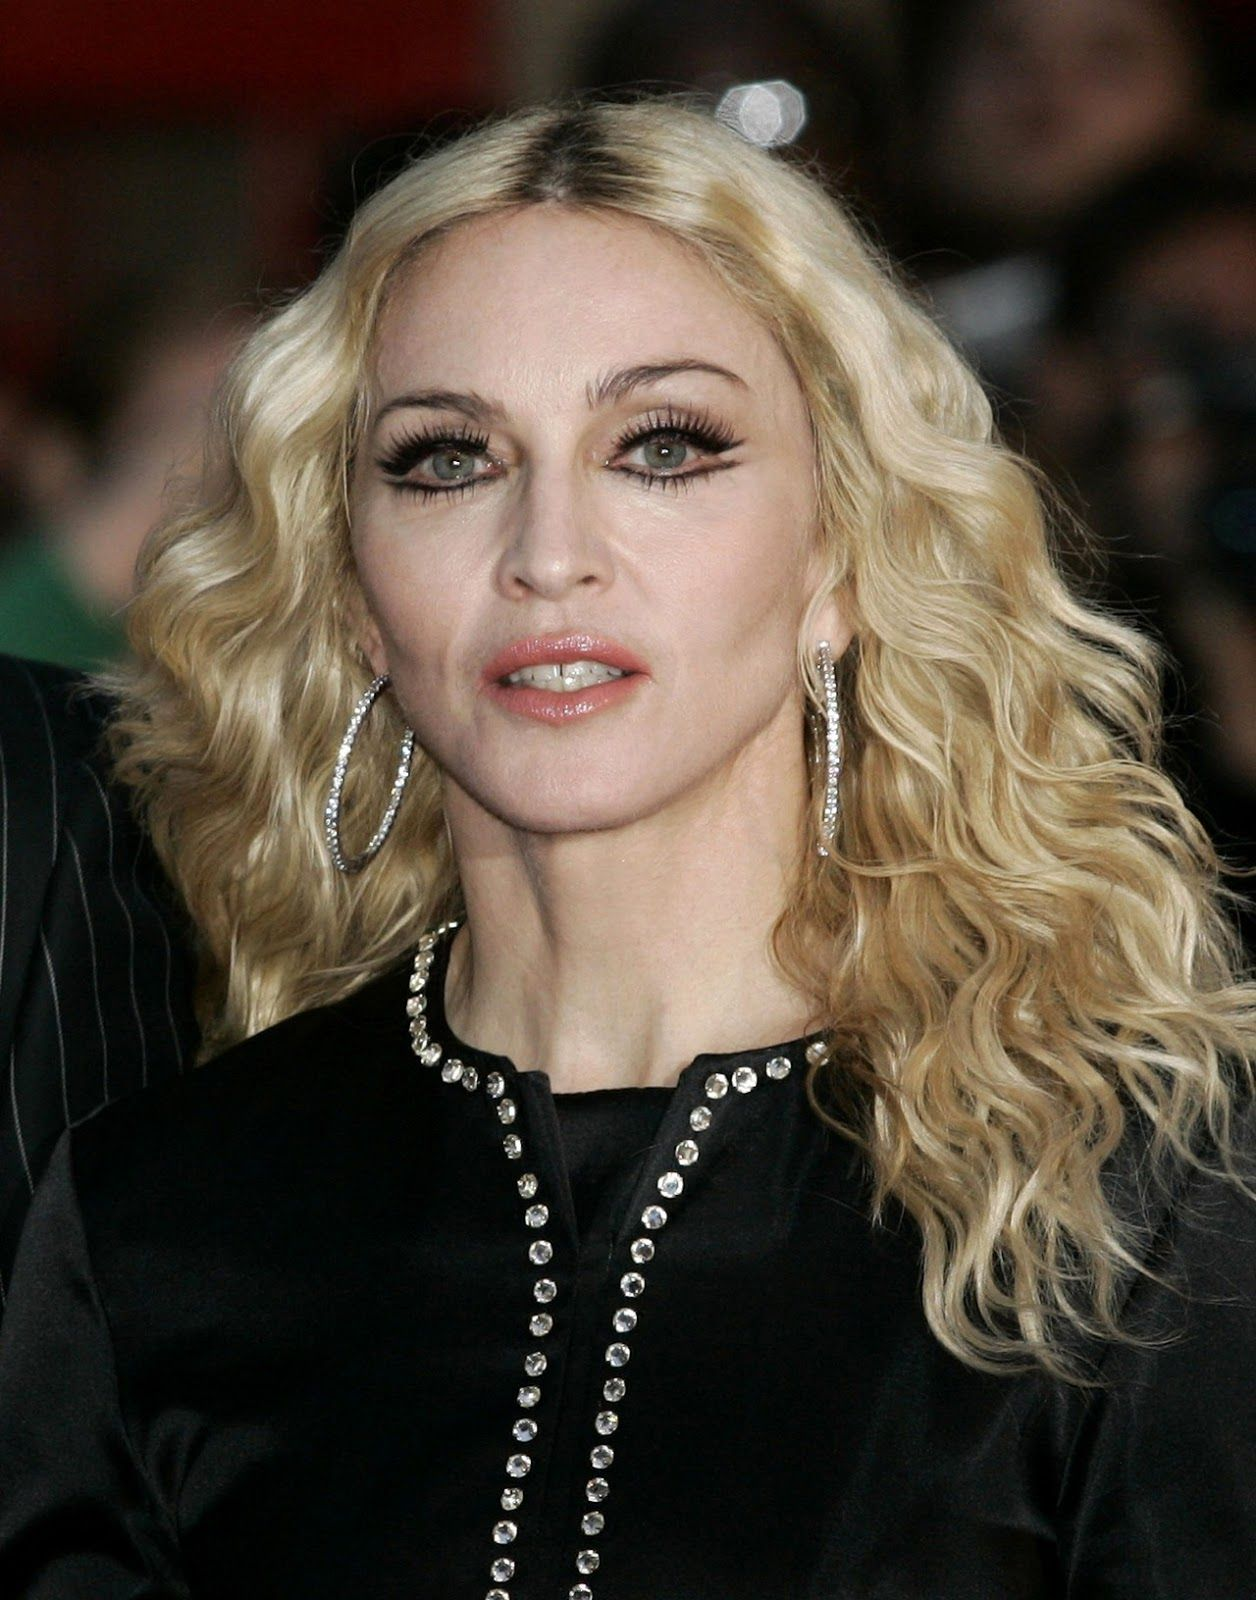 madonna makeup Fashion Style Madonna Pinterest